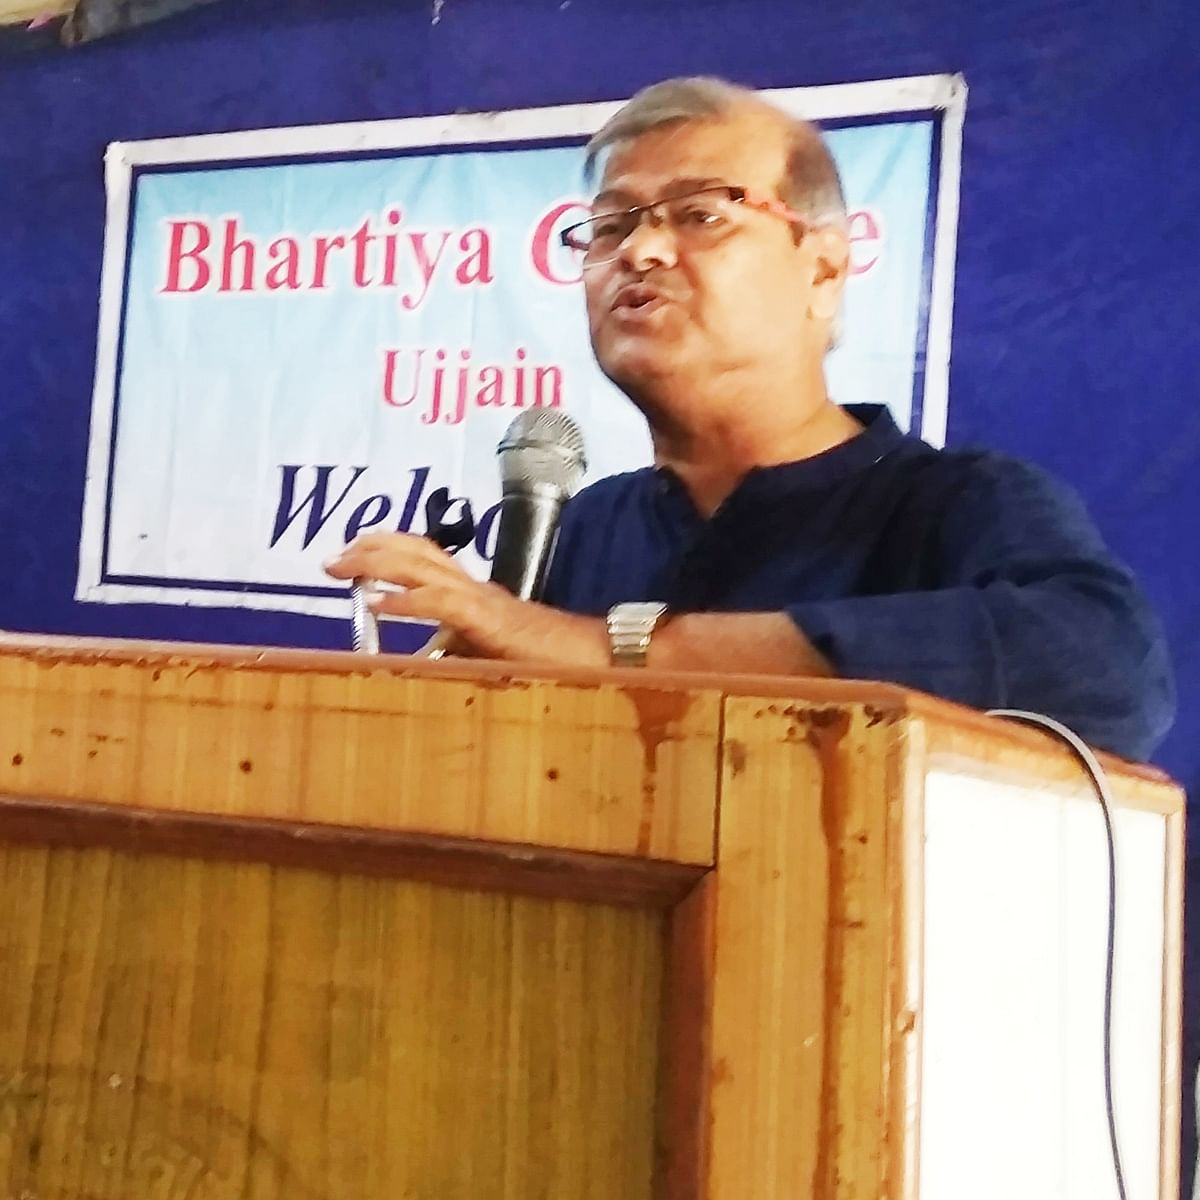 Ujjain: 'Change of ideas is very important for environmental protection'